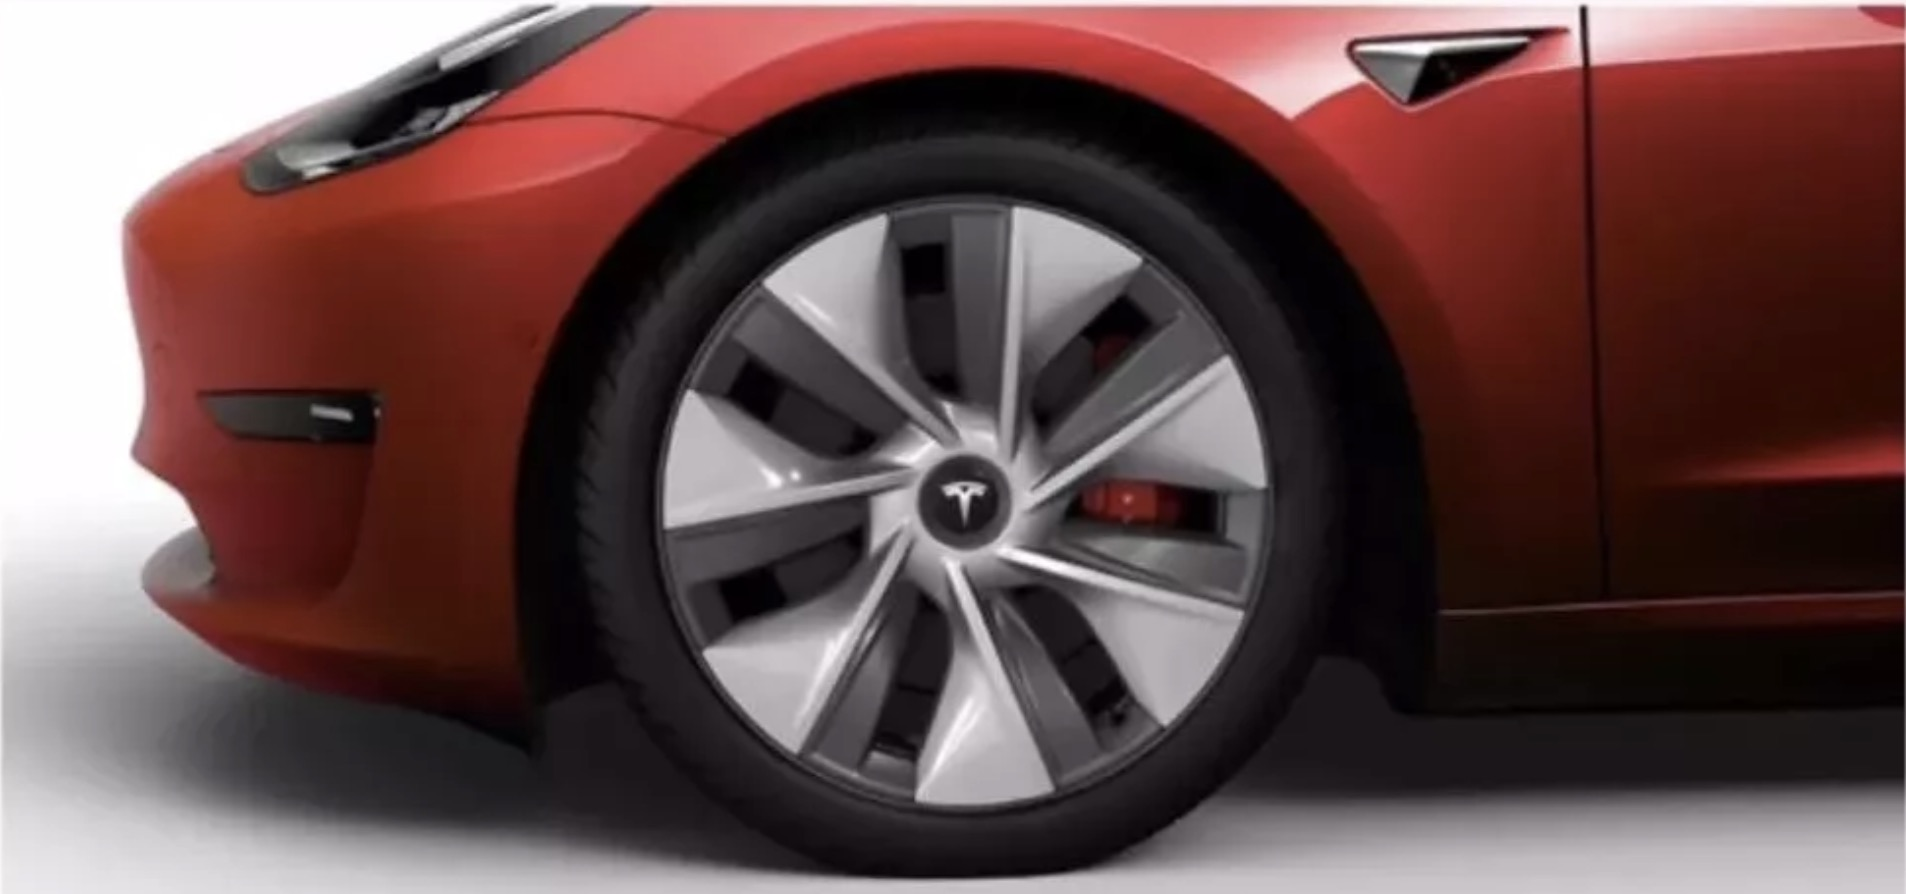 Tesla starts Model 3 orders in China, unveils new wheel design